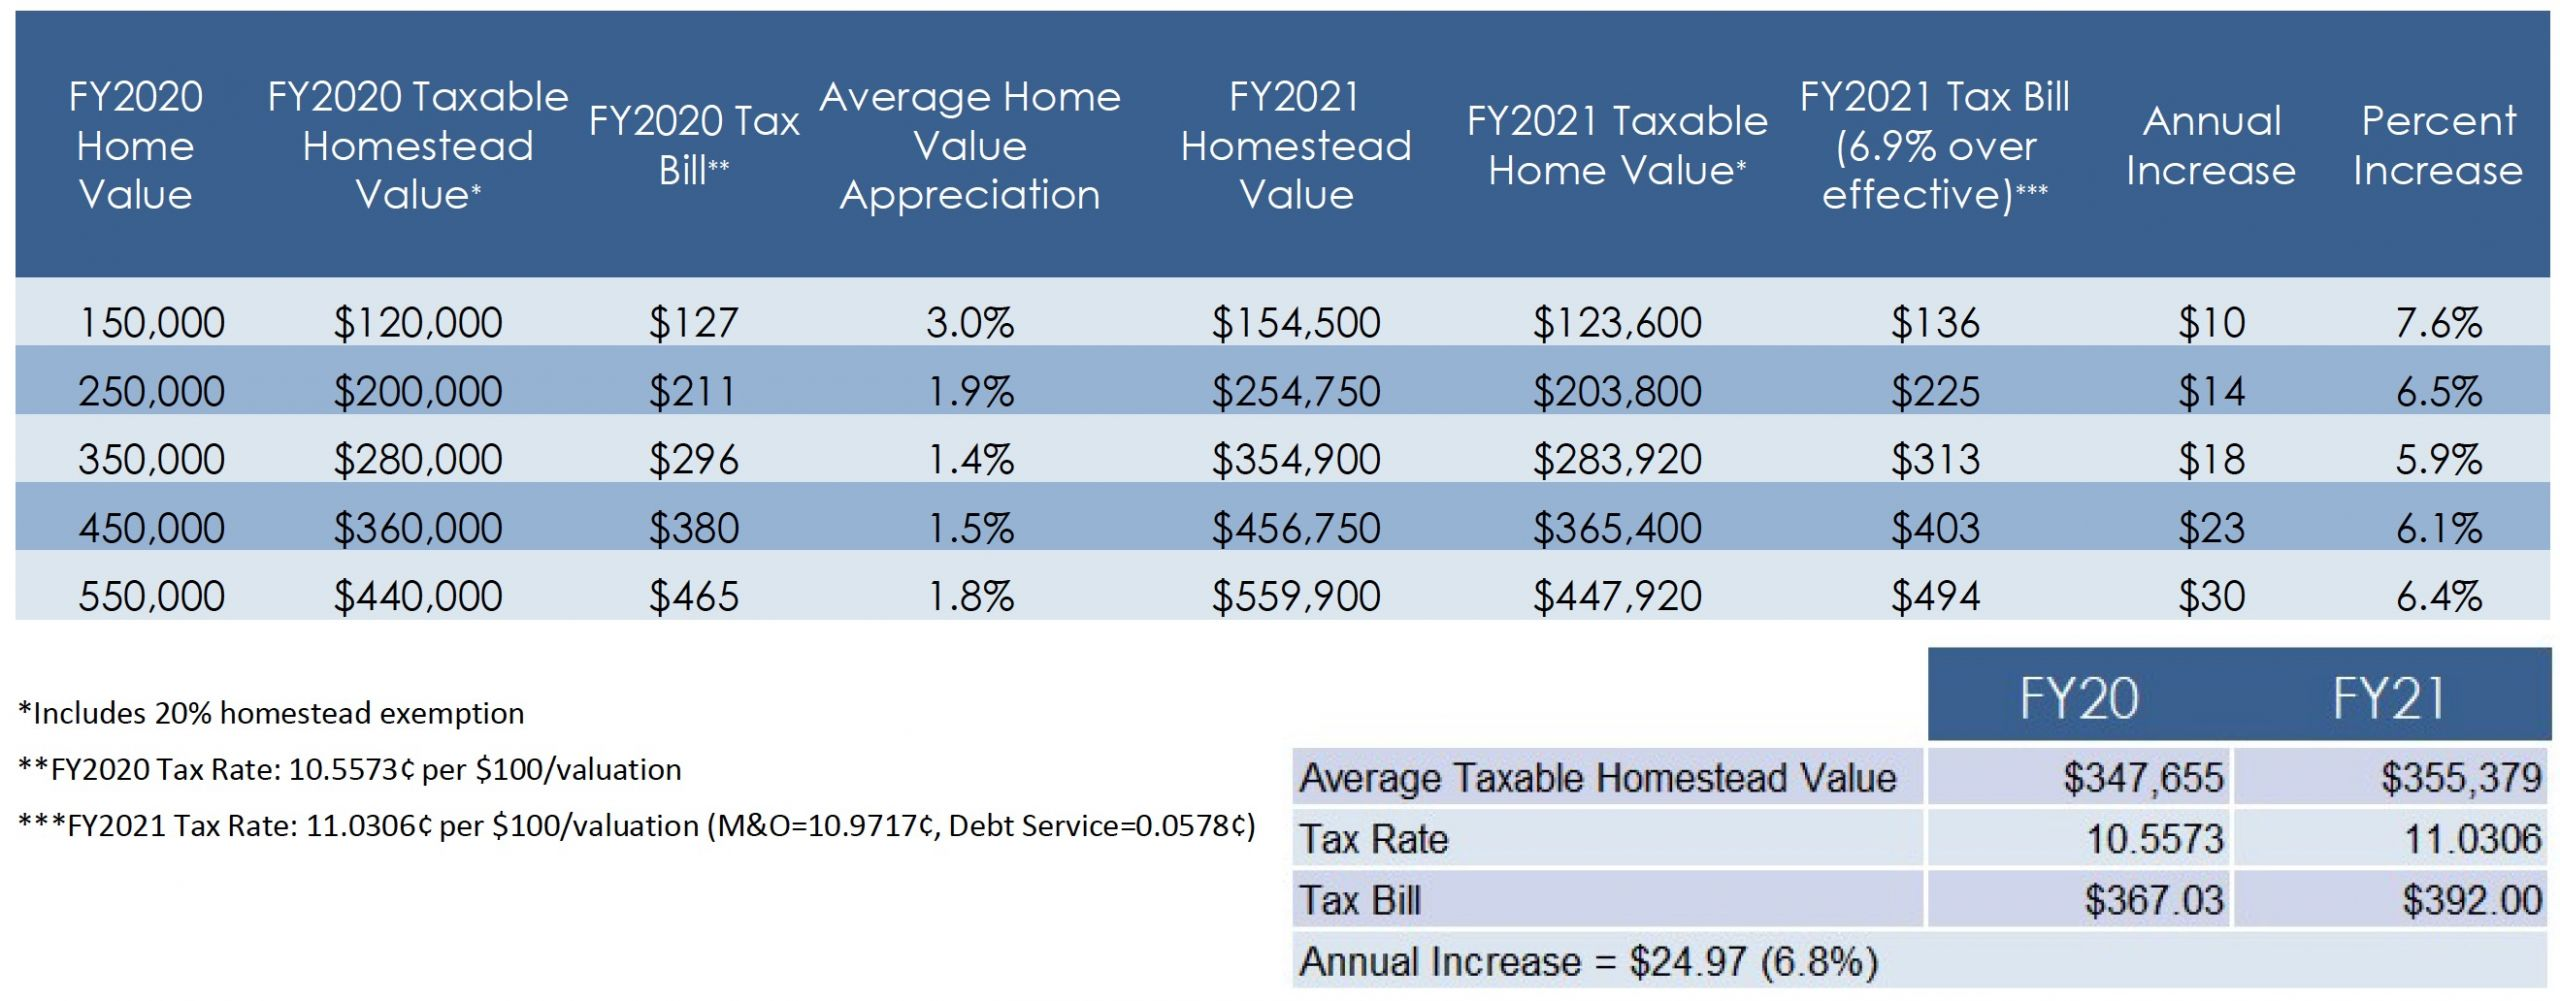 property tax impact statement FY21